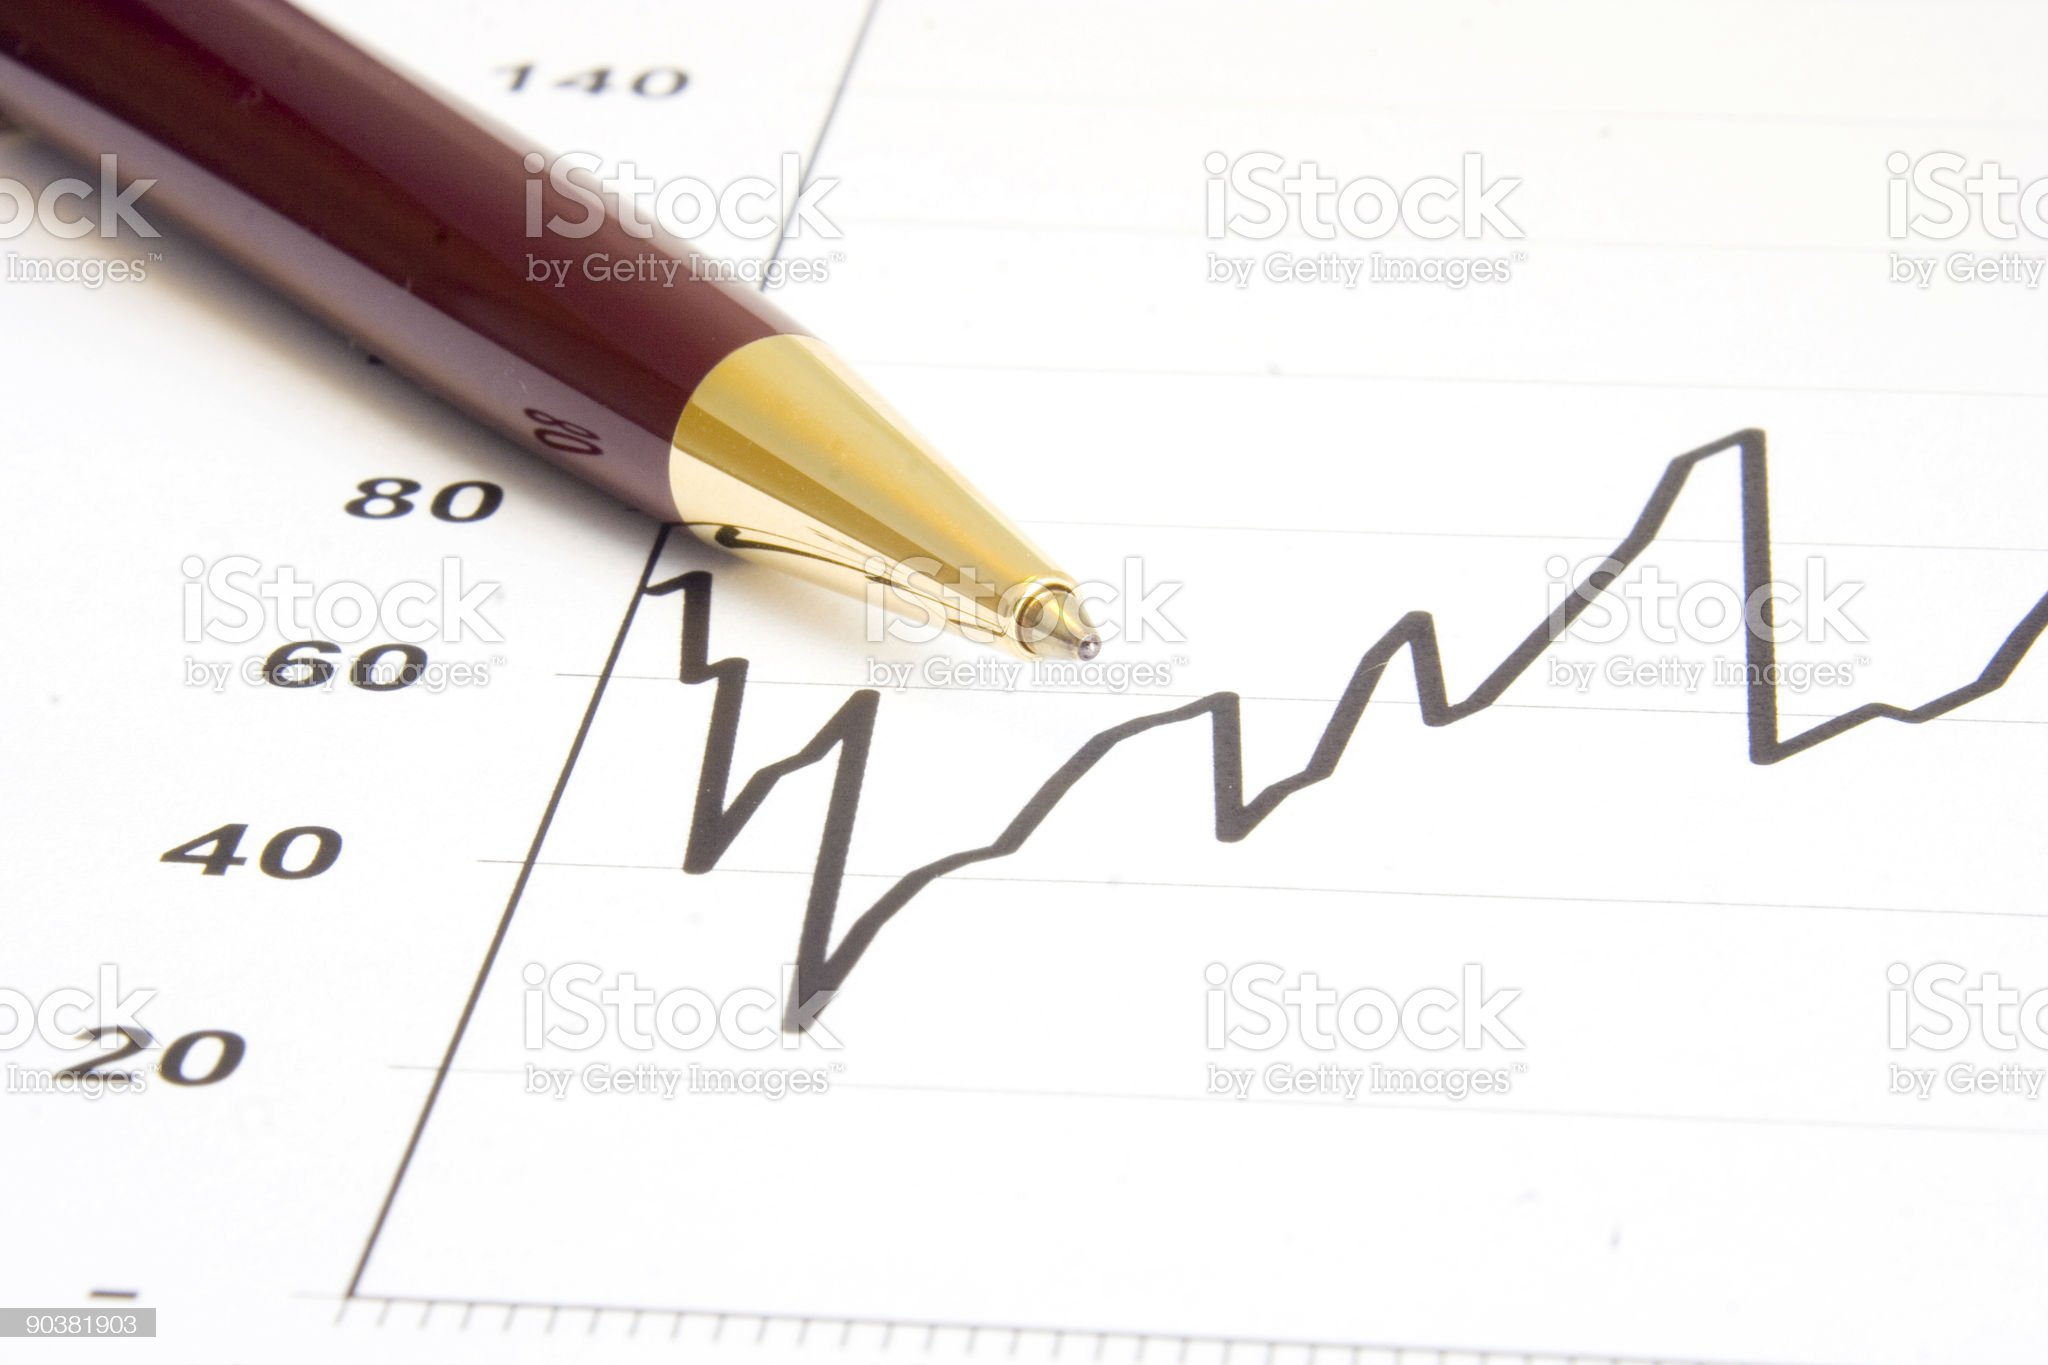 Graph and Pen Closeup royalty-free stock photo